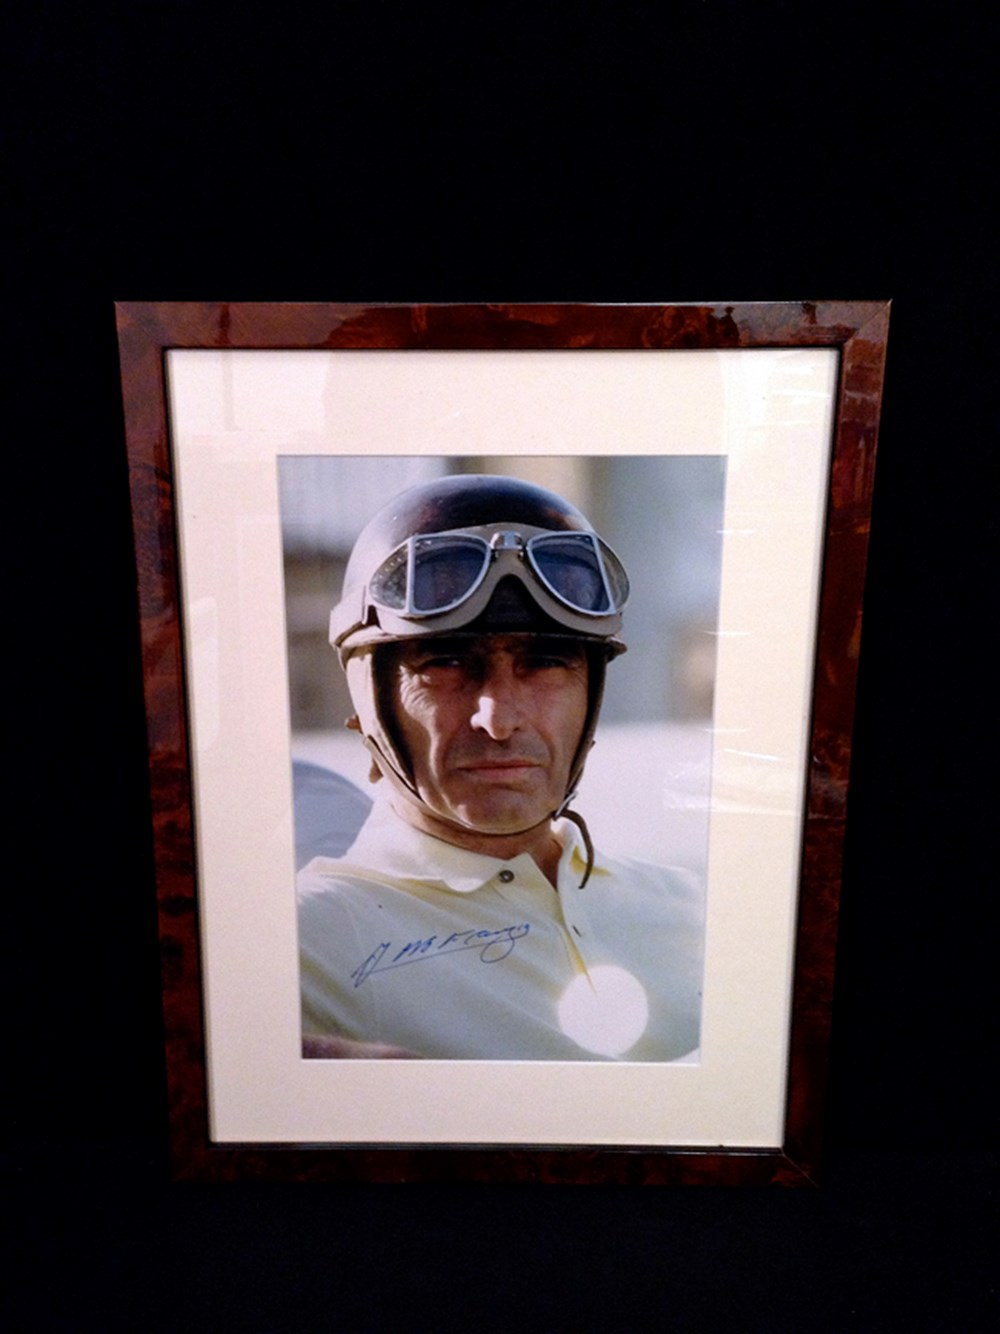 Lot 152 - Signed Fangio print